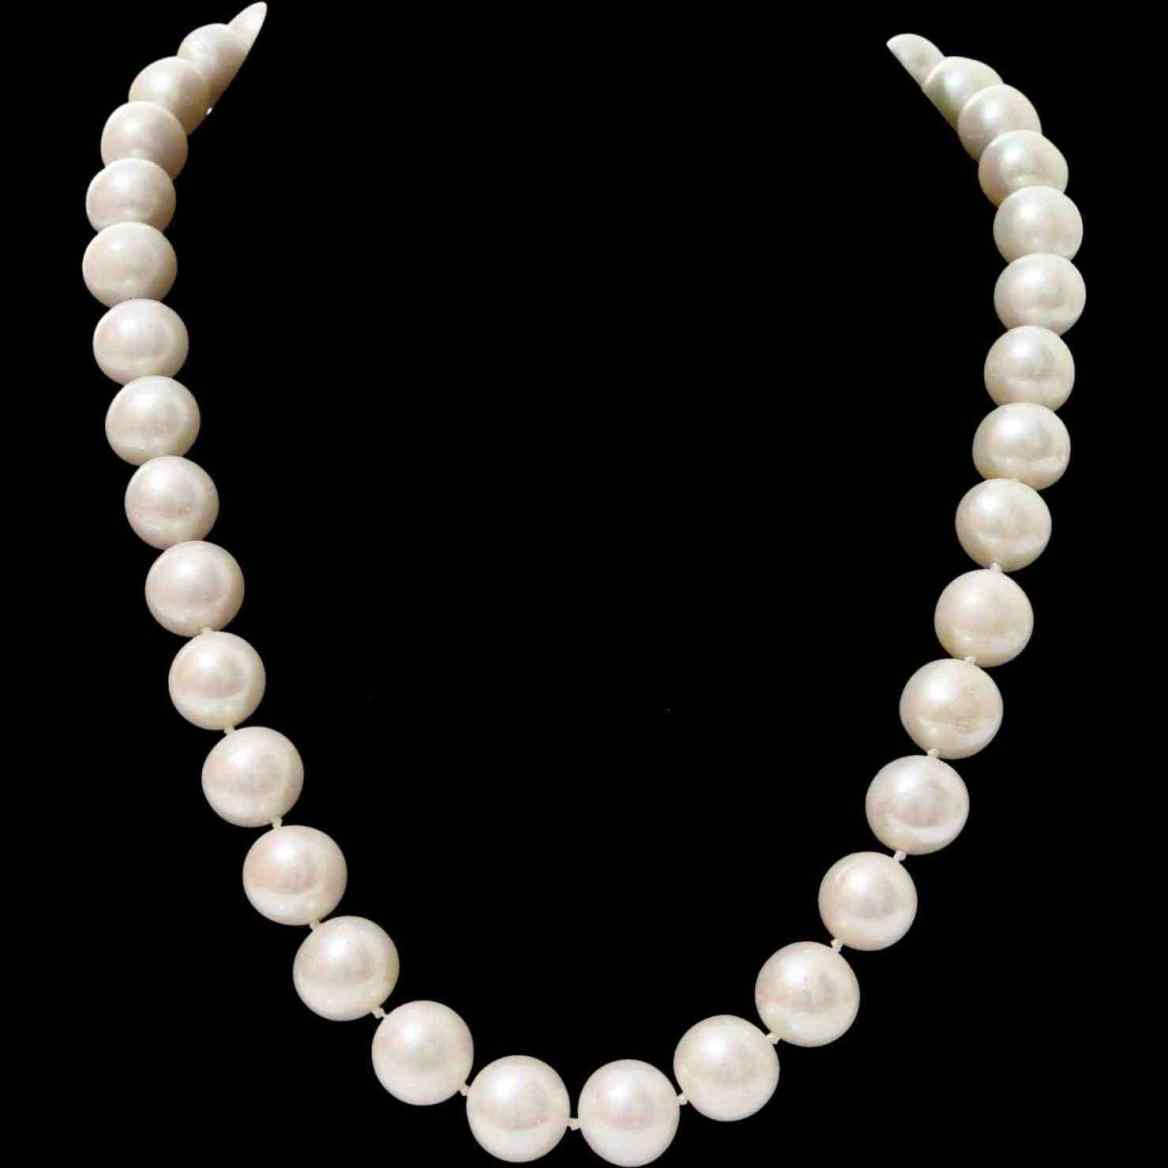 1168x1168 Pearl Necklace Clipart